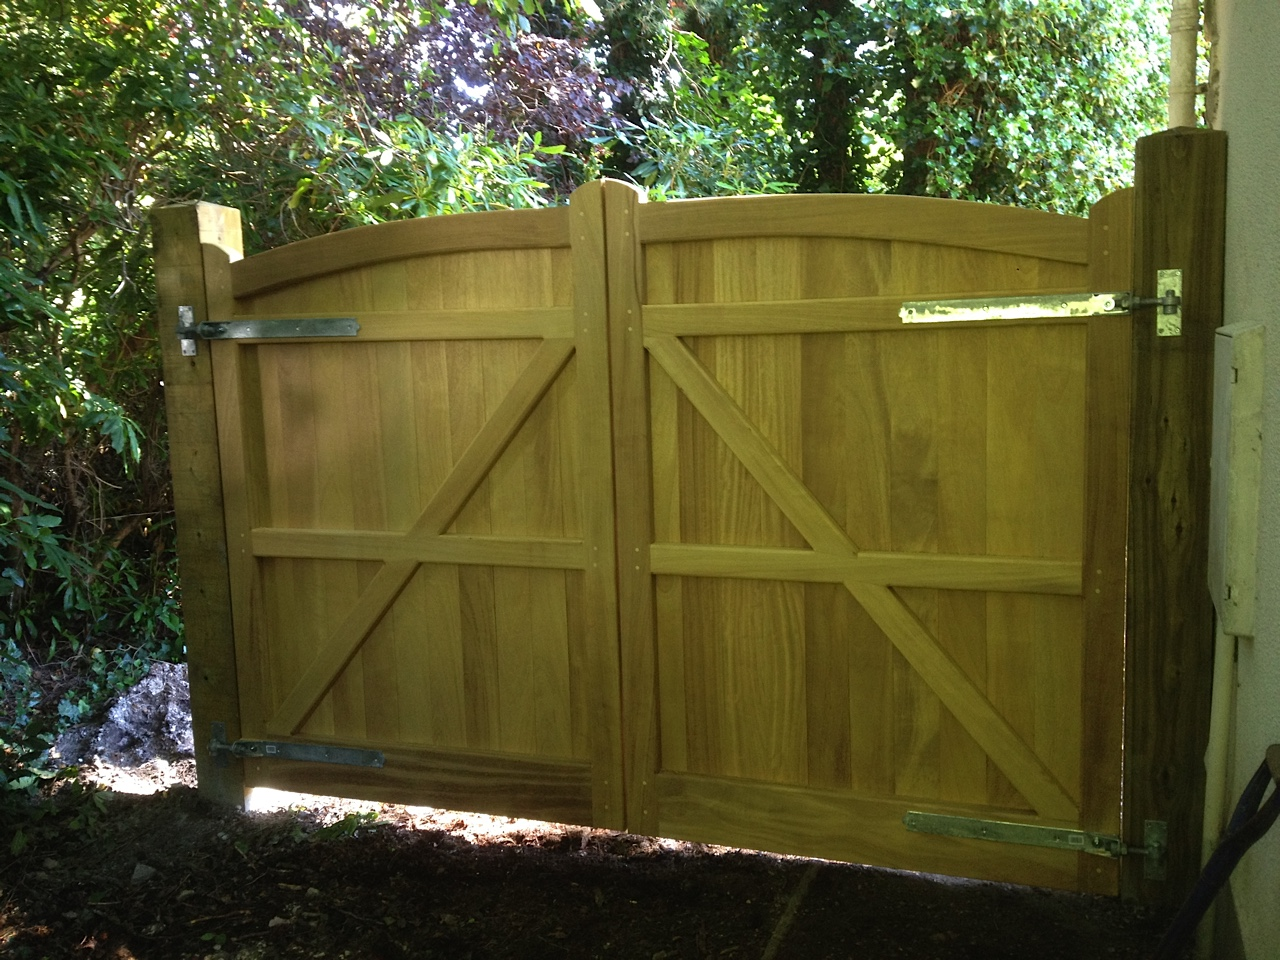 Knightsbridge Gates in Iroko